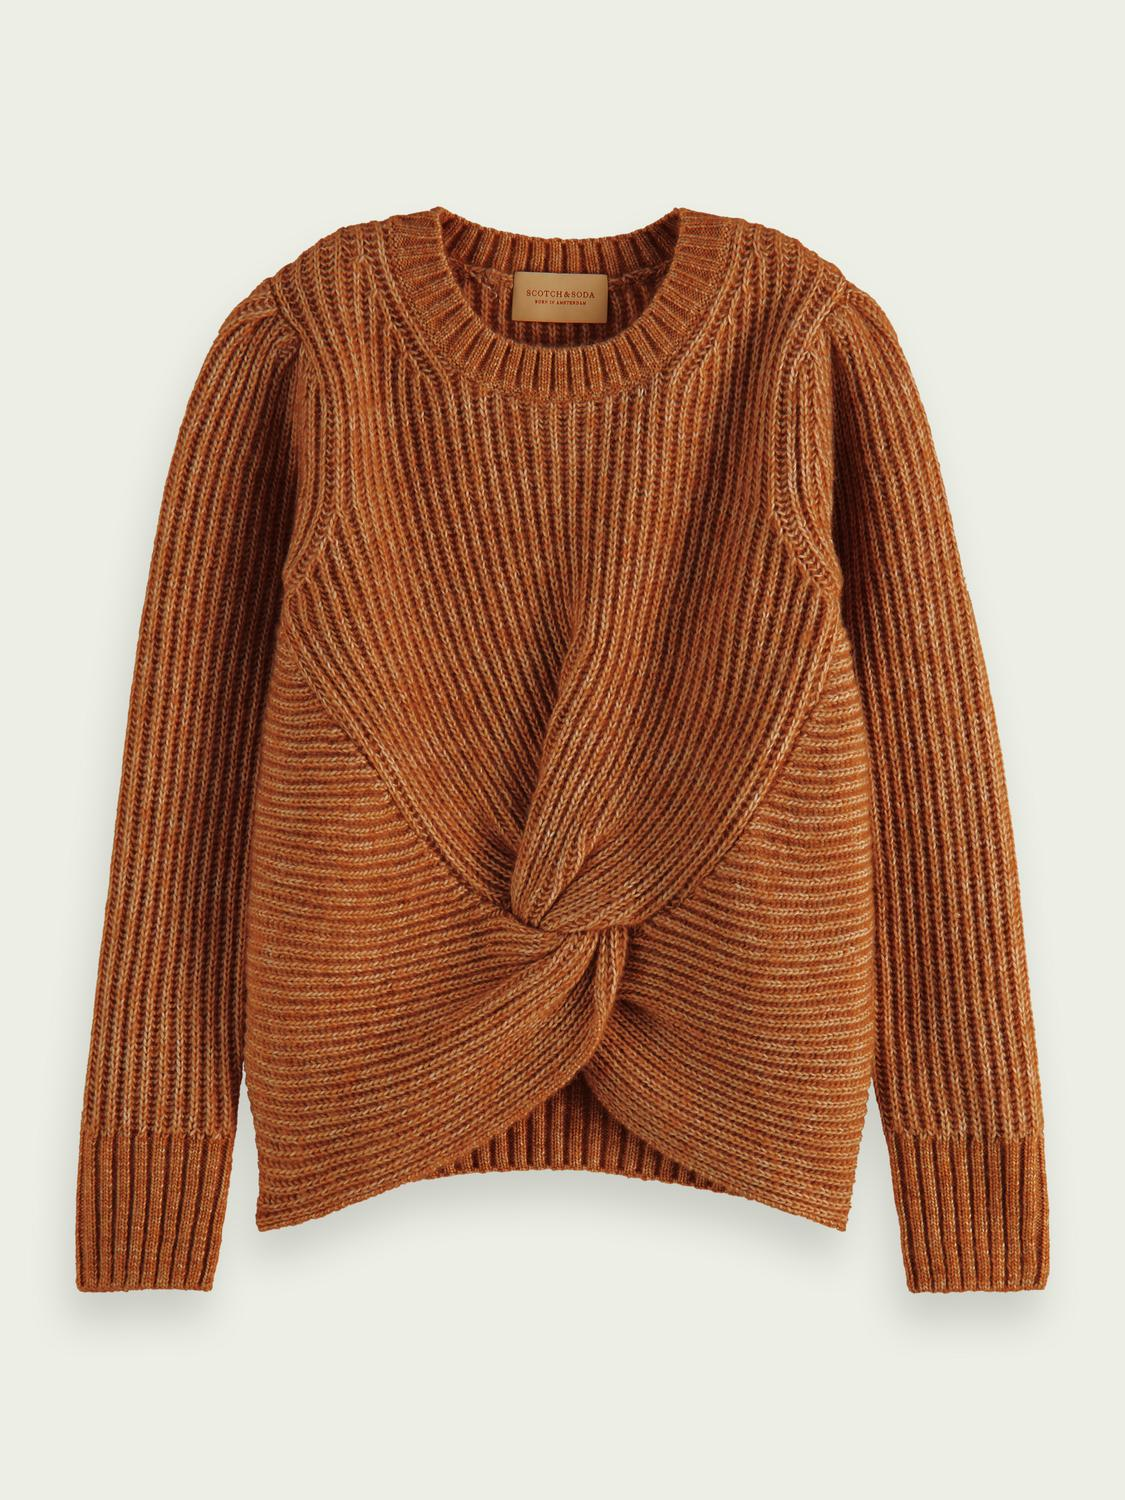 Knotted relaxed-fit sweater